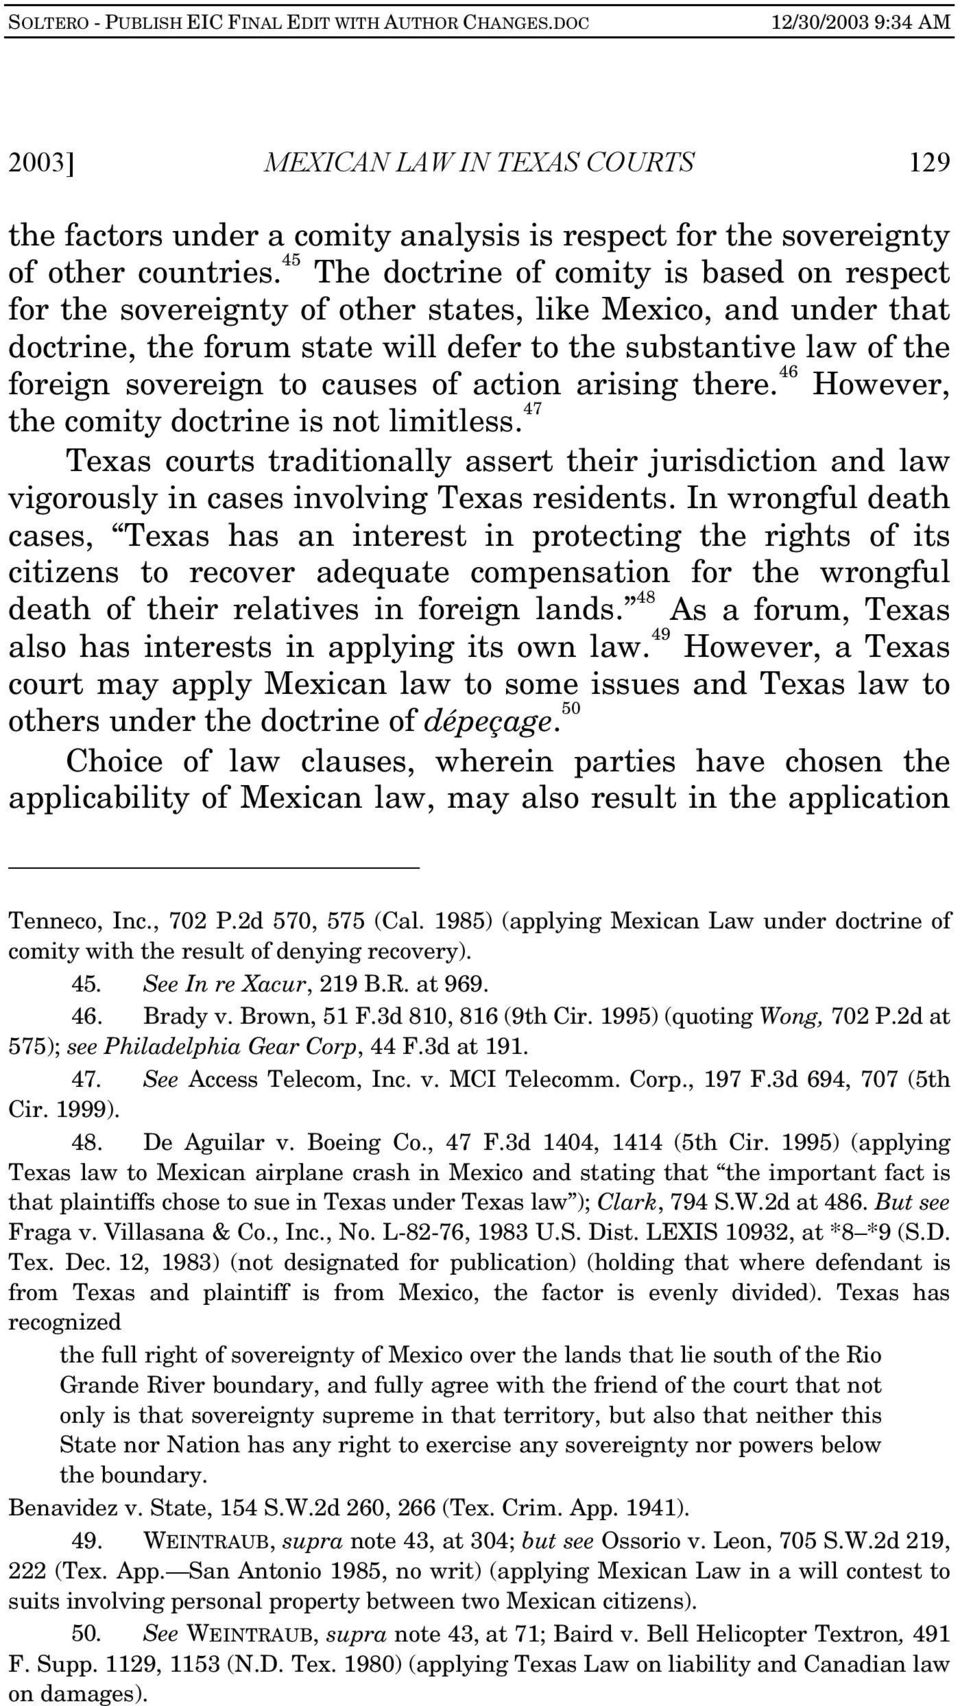 causes of action arising there. 46 However, the comity doctrine is not limitless. 47 Texas courts traditionally assert their jurisdiction and law vigorously in cases involving Texas residents.